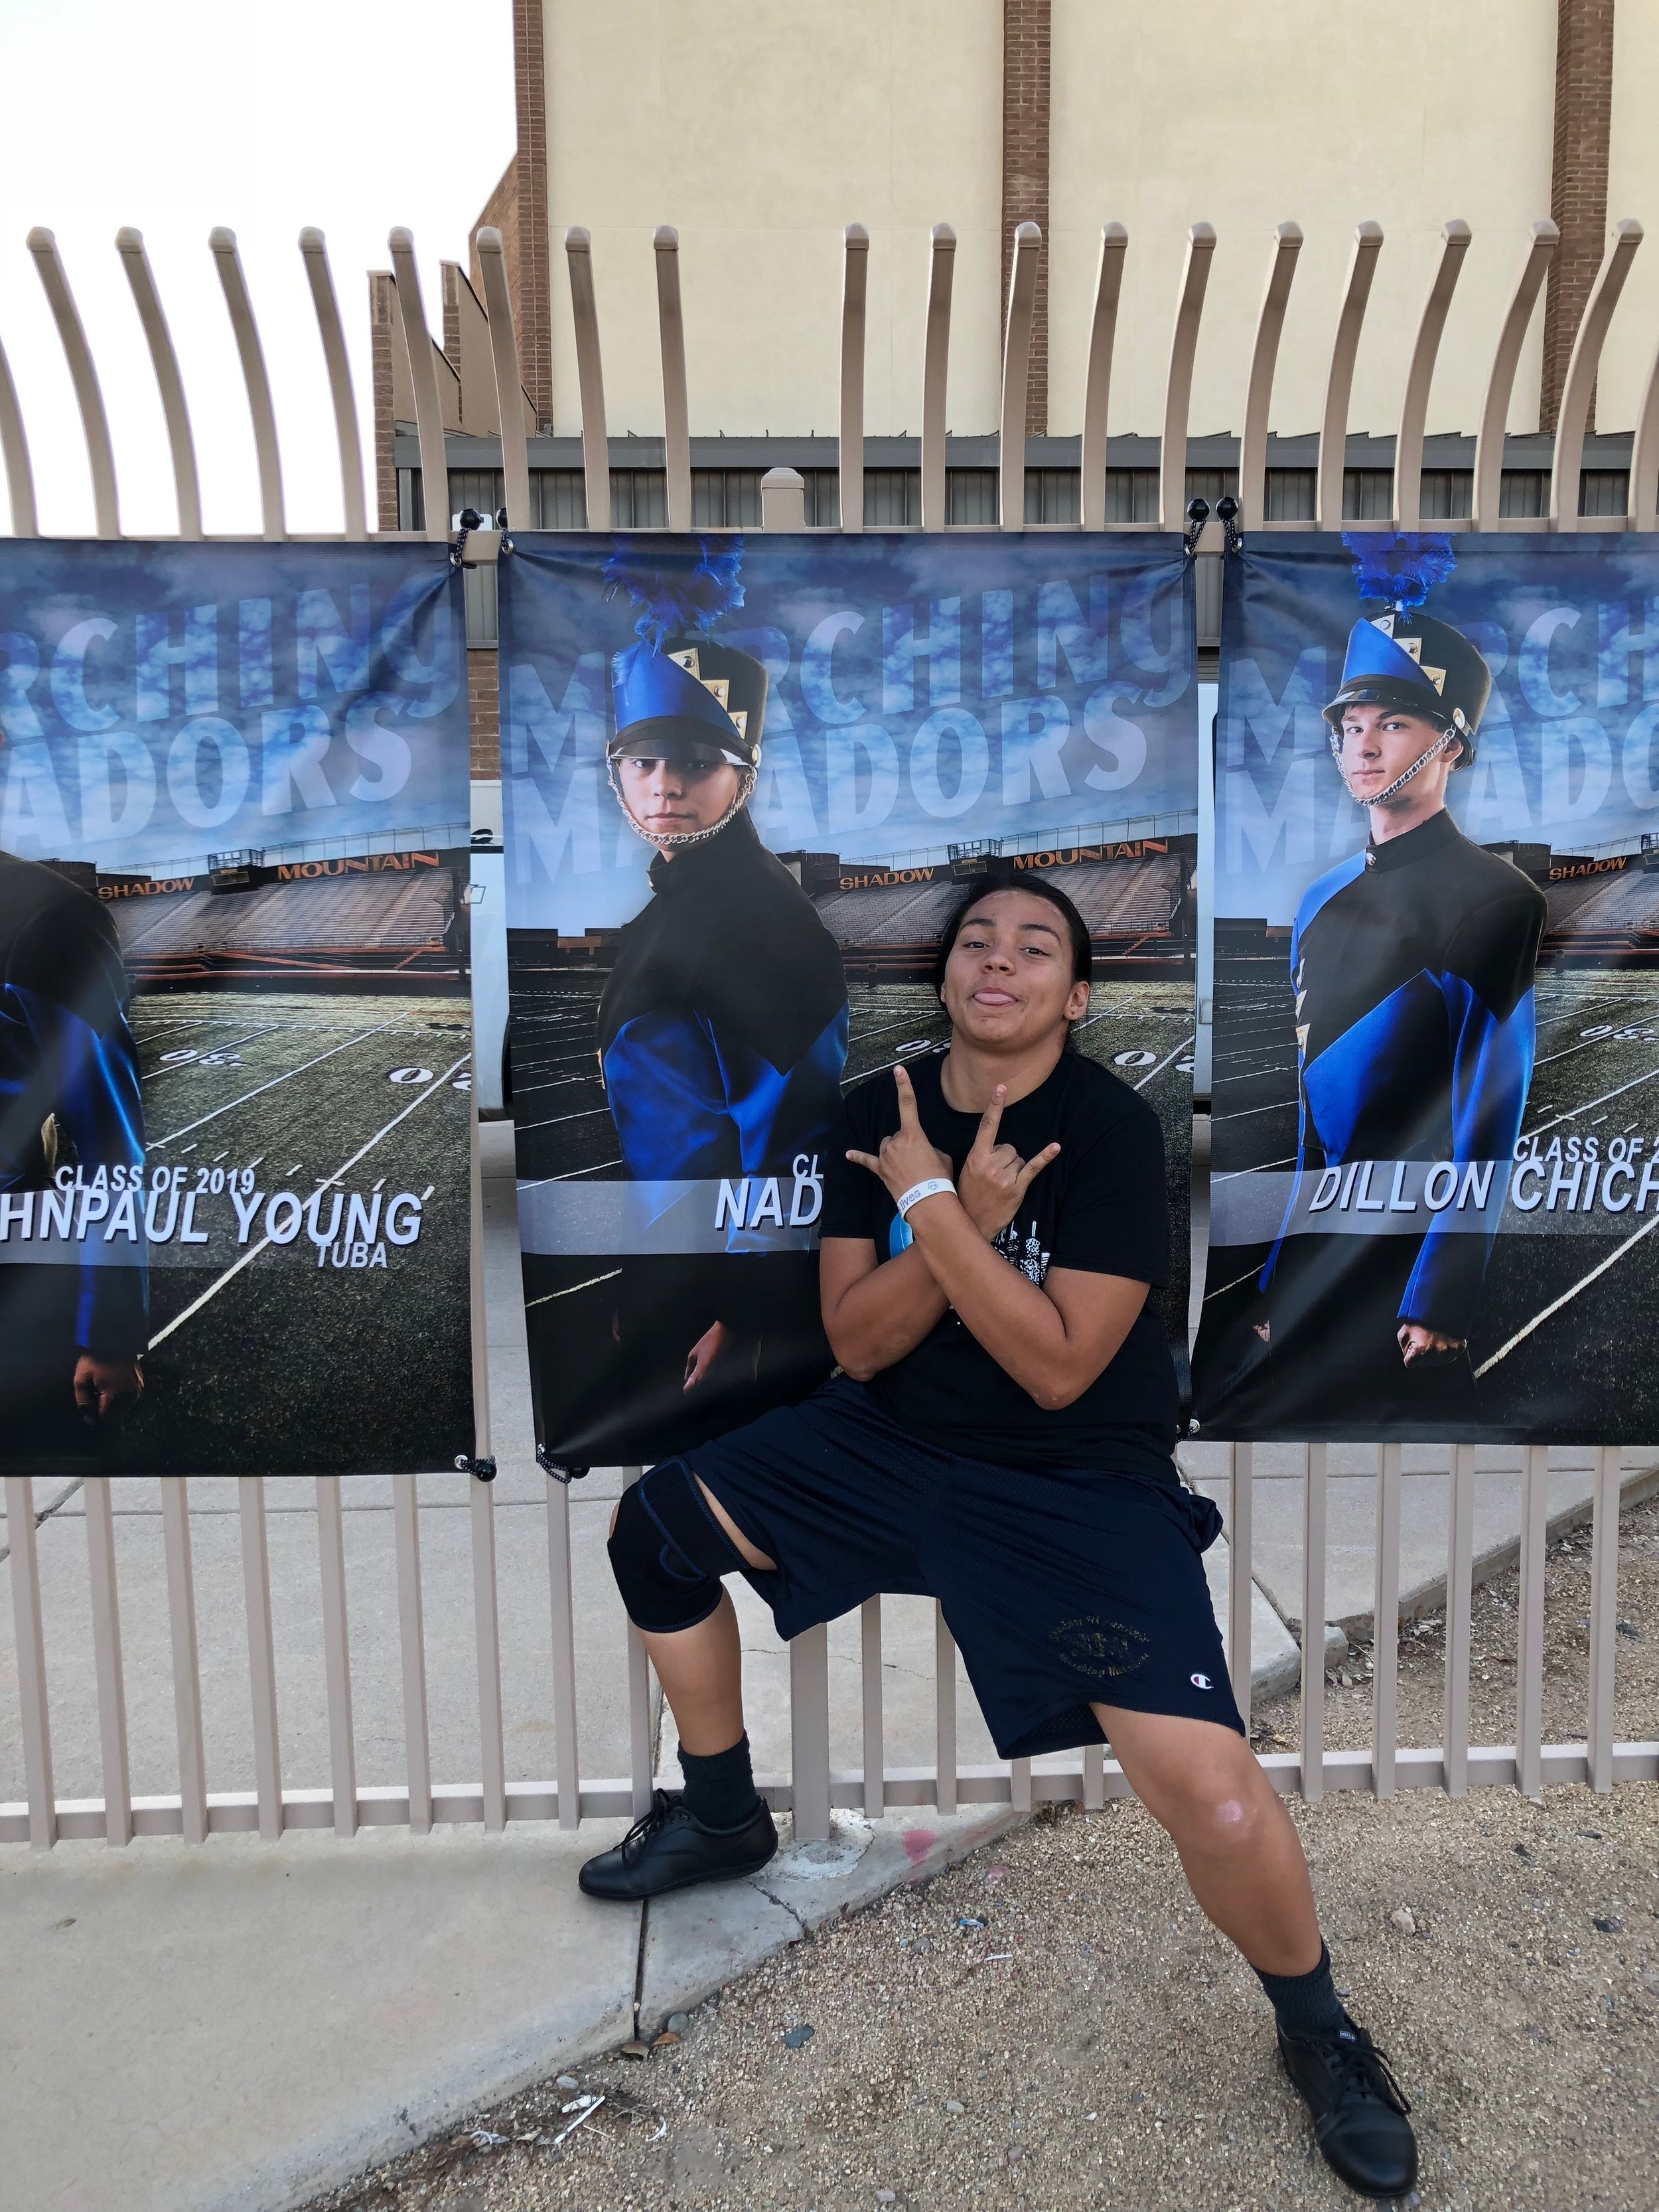 Nadia was happy with senior banner! Yay! I really want the band to have fun, feel appreciated, and enjoy the individual and group photography session.  They work hard and they deserve it!!!!